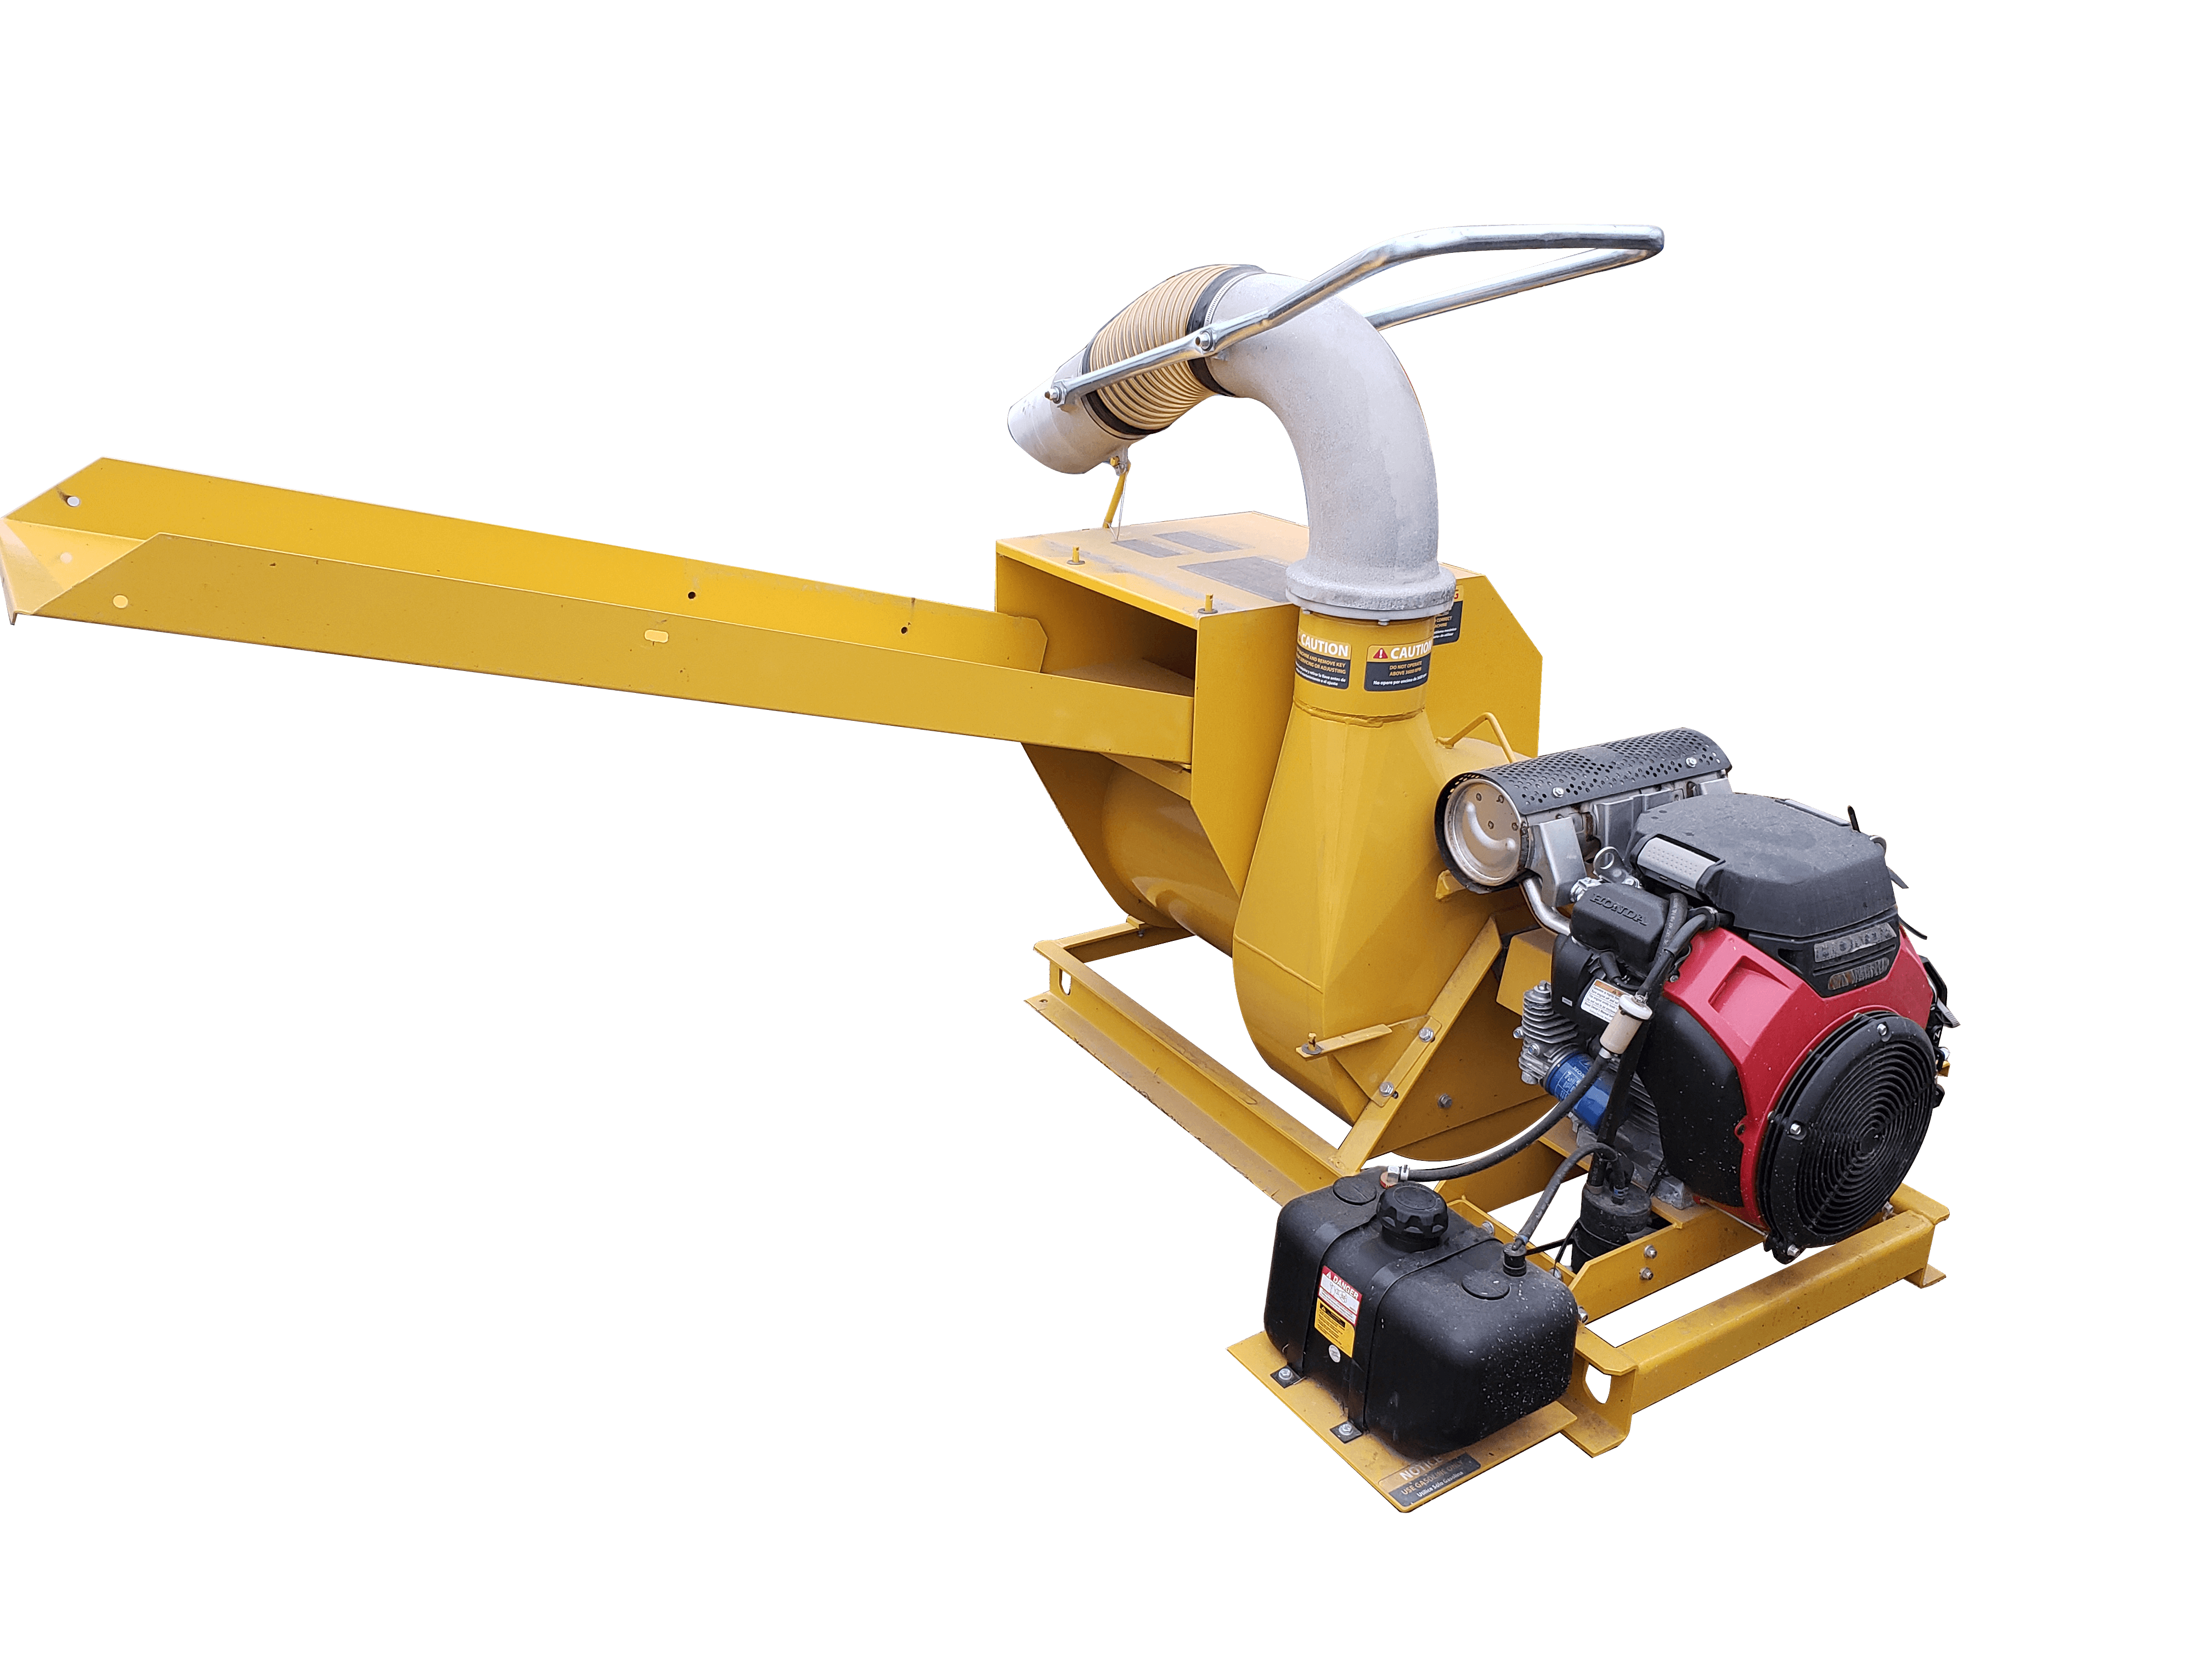 2438_20191003-080516 Powermulcher For Sale |TMJr | Perfect For Small Hydromulching Jobs